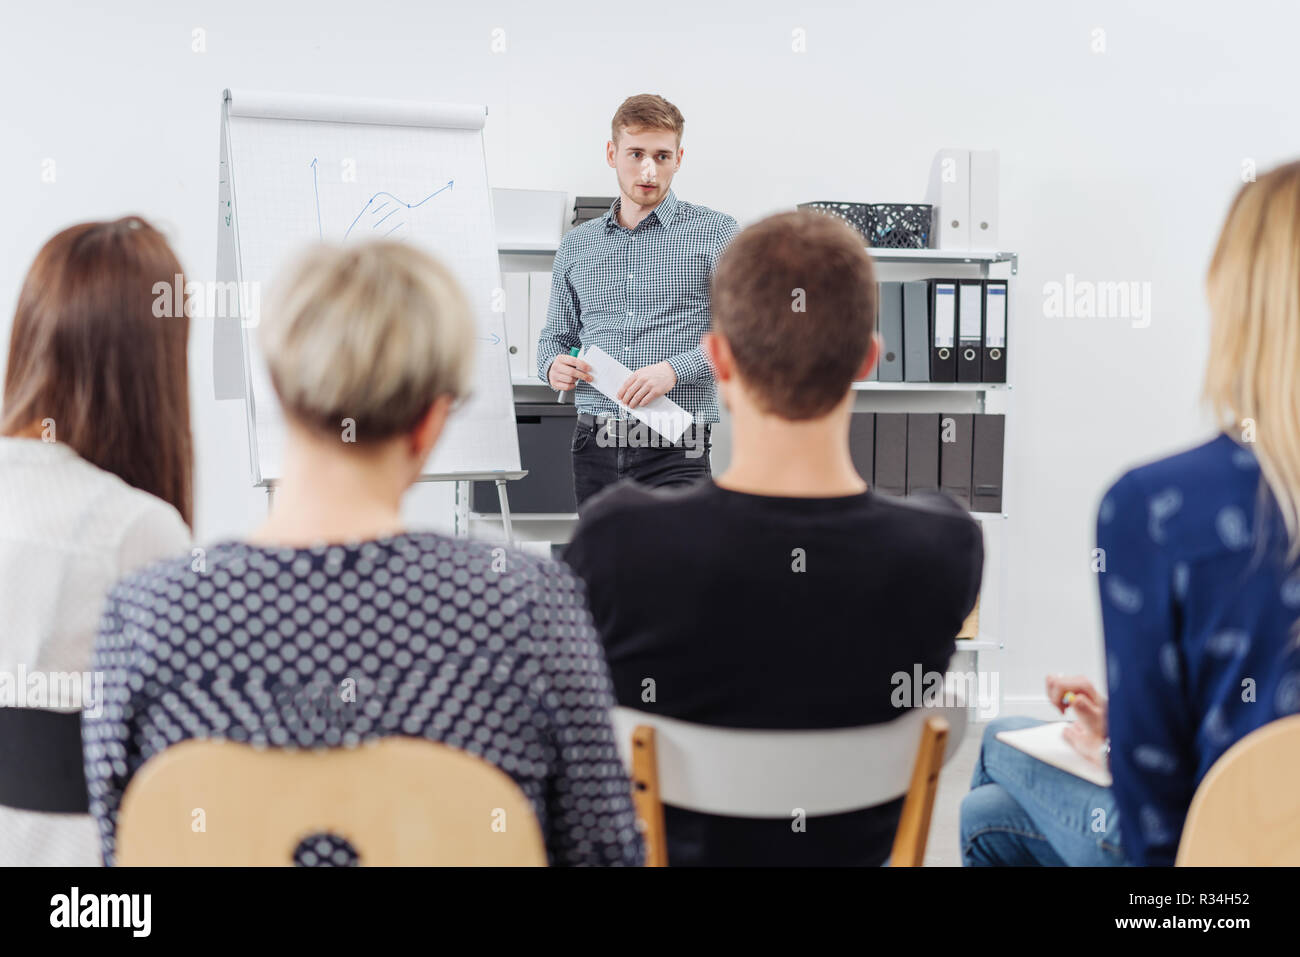 Businessman giving a presentation or in house training to a group of people viewed from behind with focus to the back of one guys head - Stock Image